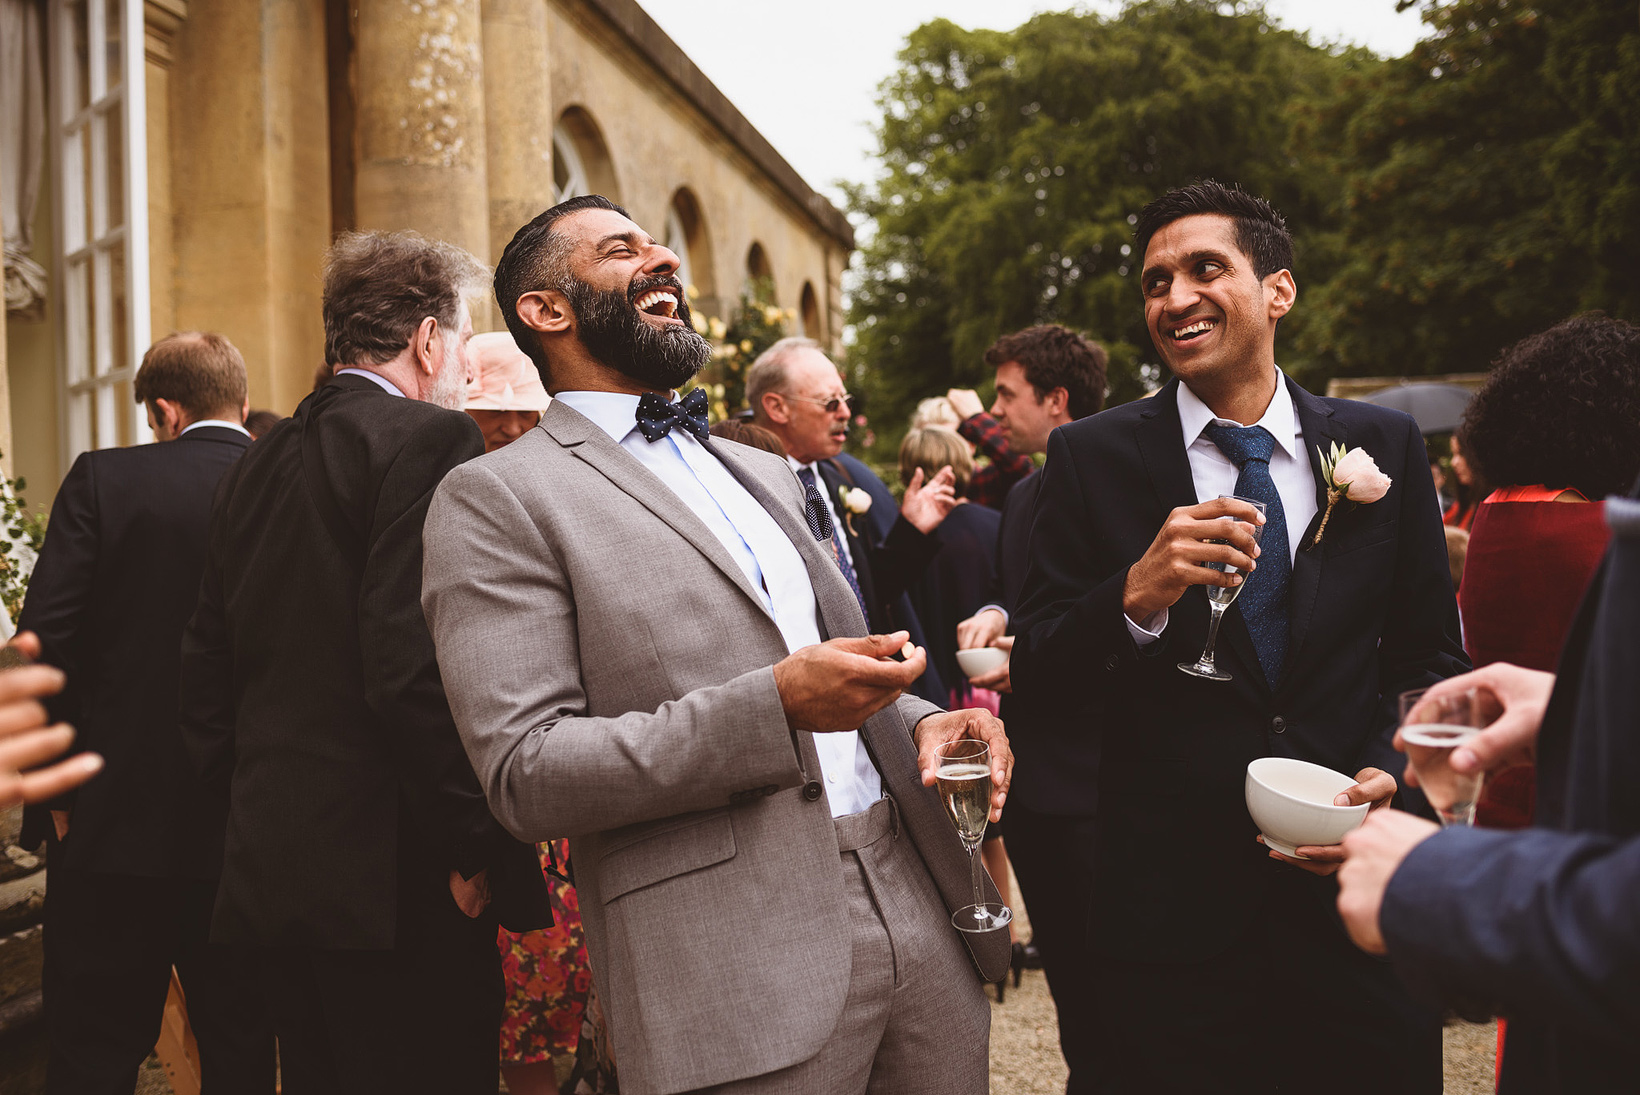 Blenheim Palace Wedding Photographs